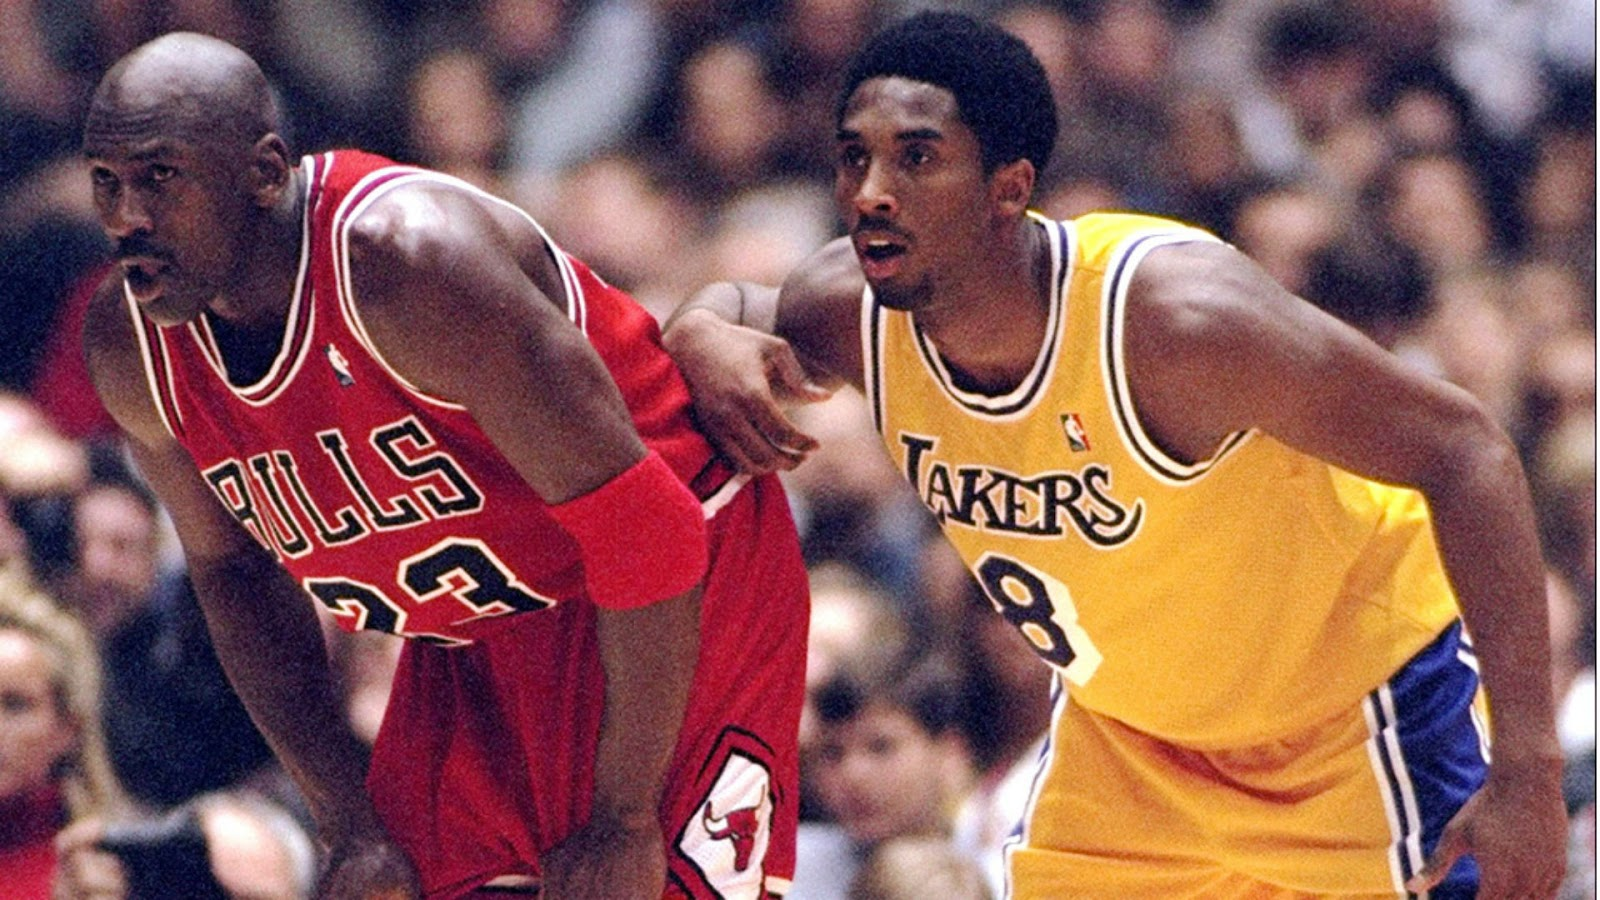 c644f3739 Before the Los Angeles Lakers took on the Charlotte Hornets